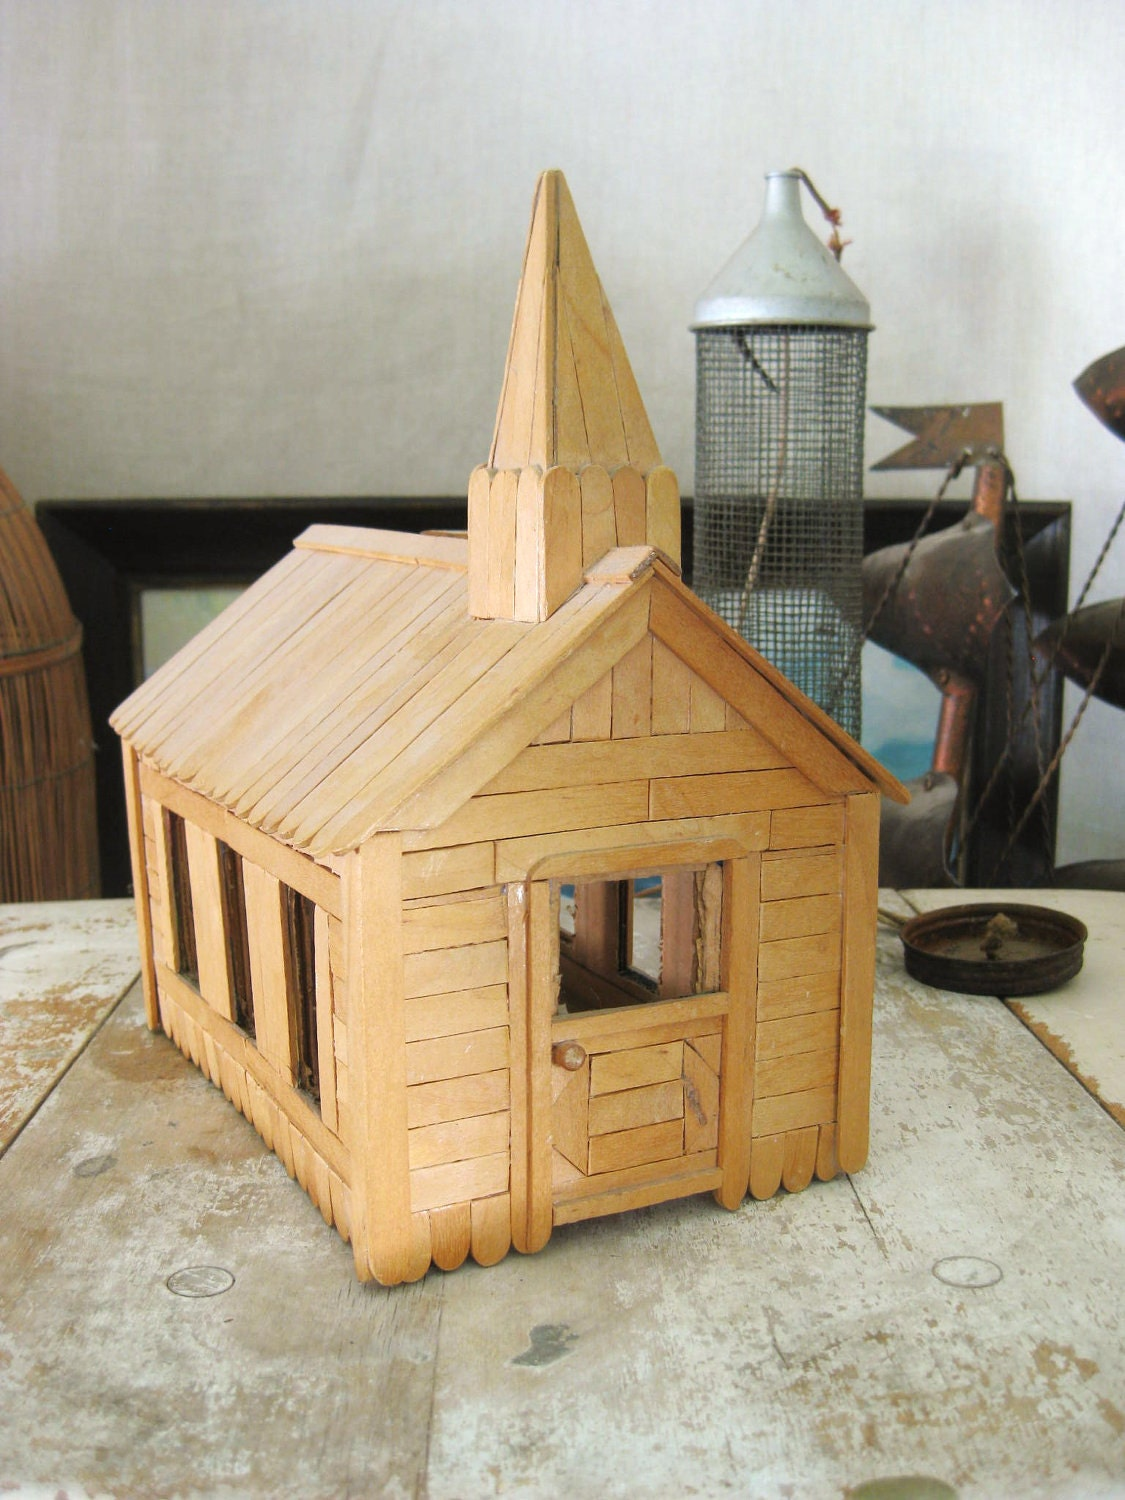 Popsicle stick church craft -  Zoom